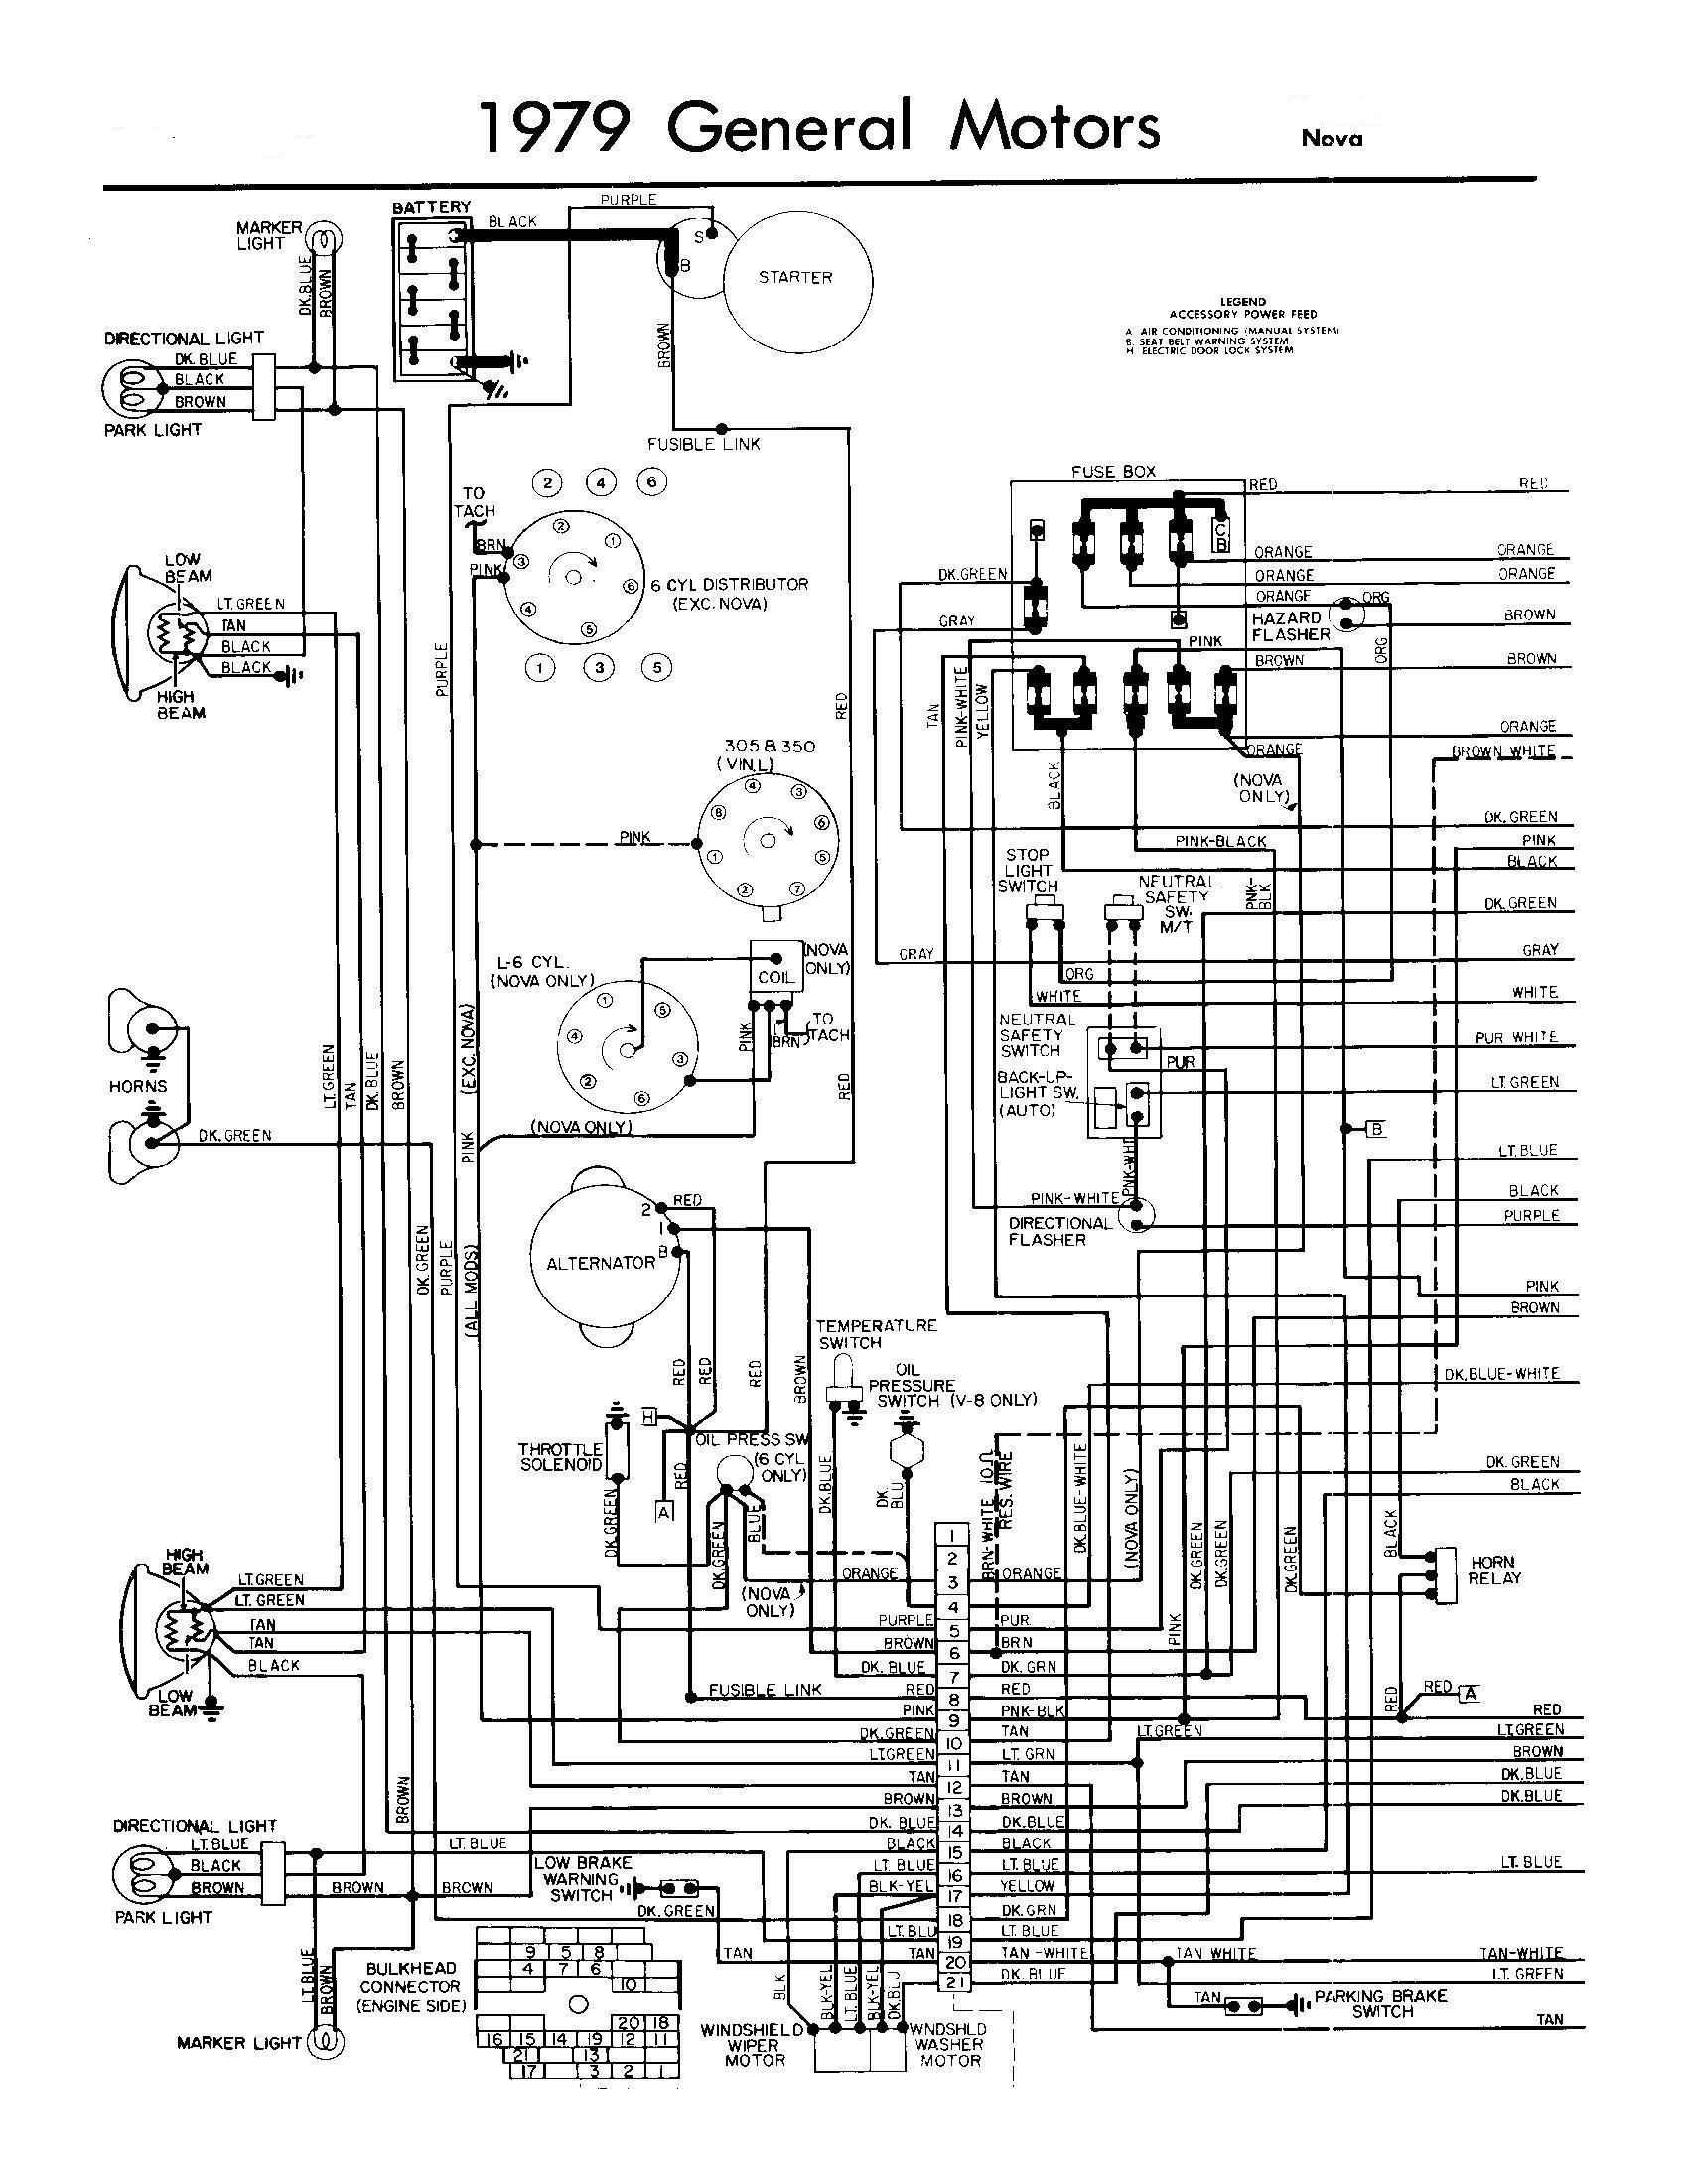 [SCHEMATICS_48EU]  67AD78B 1966 Chevy C10 Wiring Harness | Wiring Library | 1966 Chevy C 10 Wiring Diagrams |  | Wiring Library